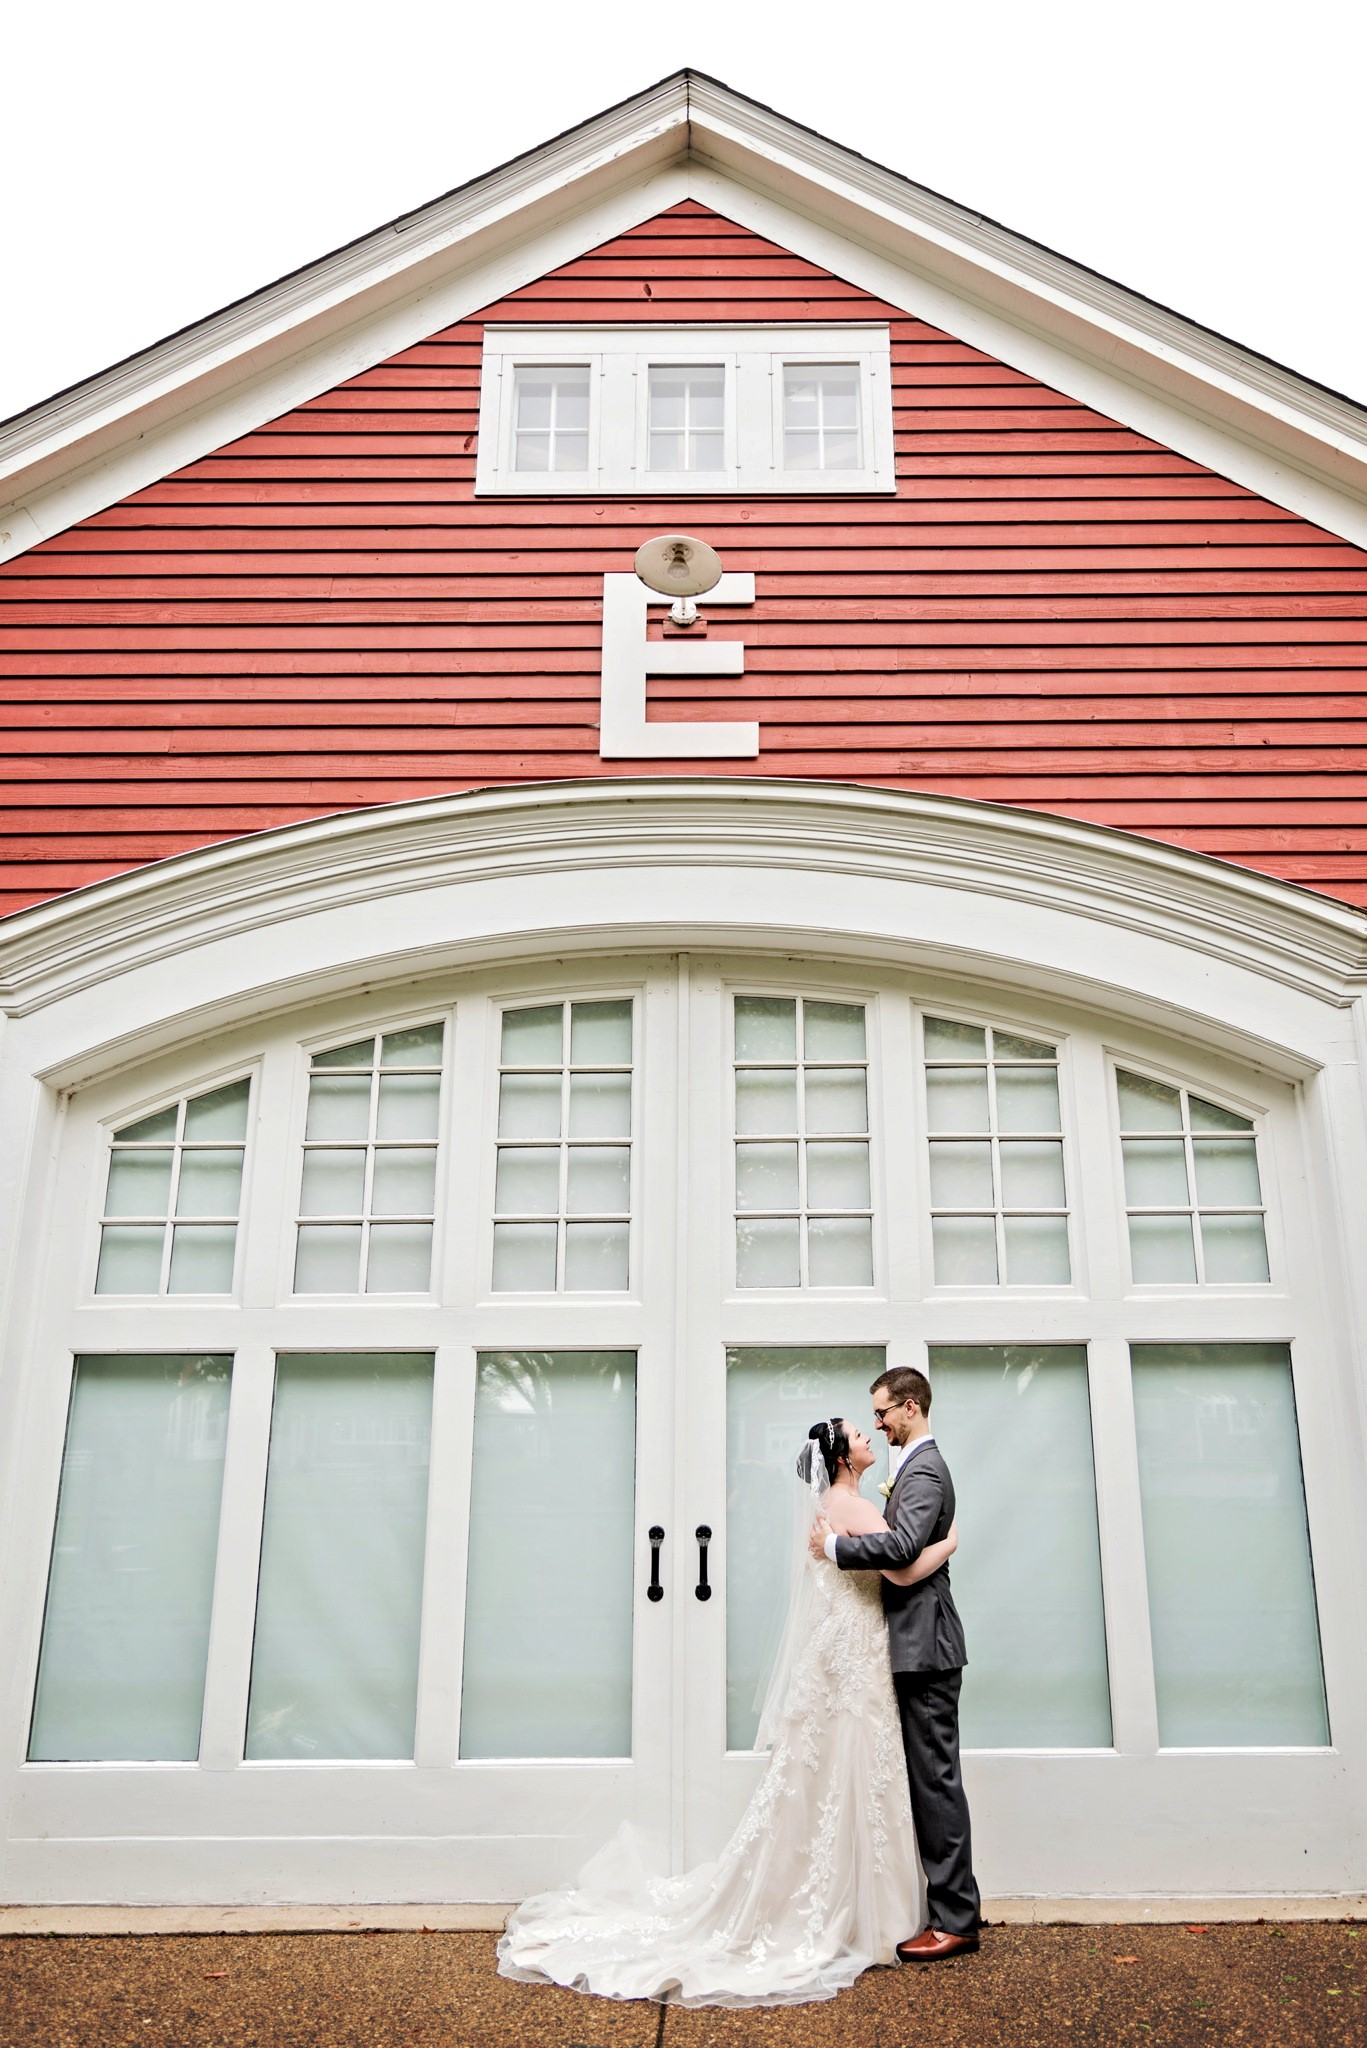 Shawny & Ian are high school sweethearts that got married in their hometown last fall